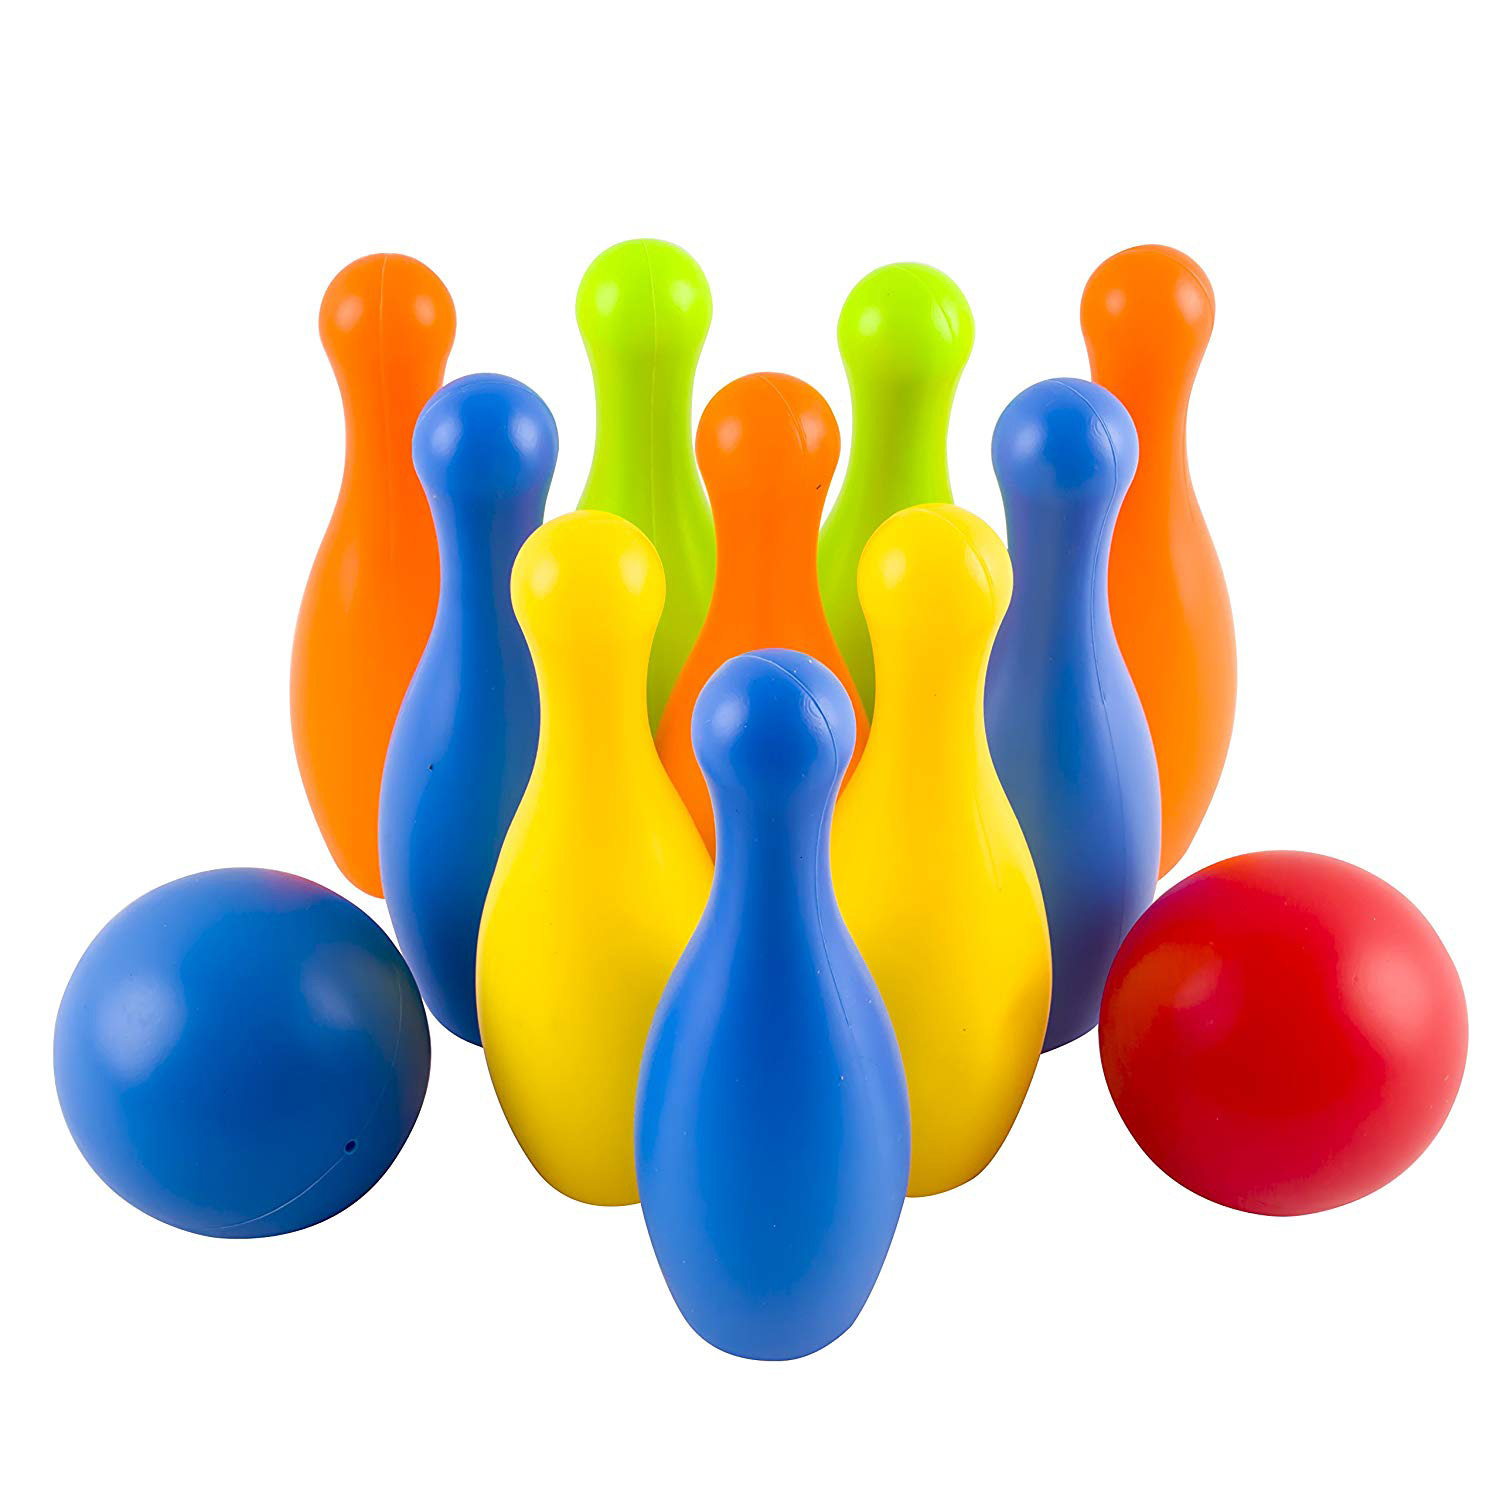 Toy Bowling Play Set Deluxe for Children Colorful 12 Piece 10 Pins 2 Balls Carrying Case Children's Educational Early Development Sport Safe Game for Ages 2 3 4 5 Year Old Toddlers Unisex boy or girl